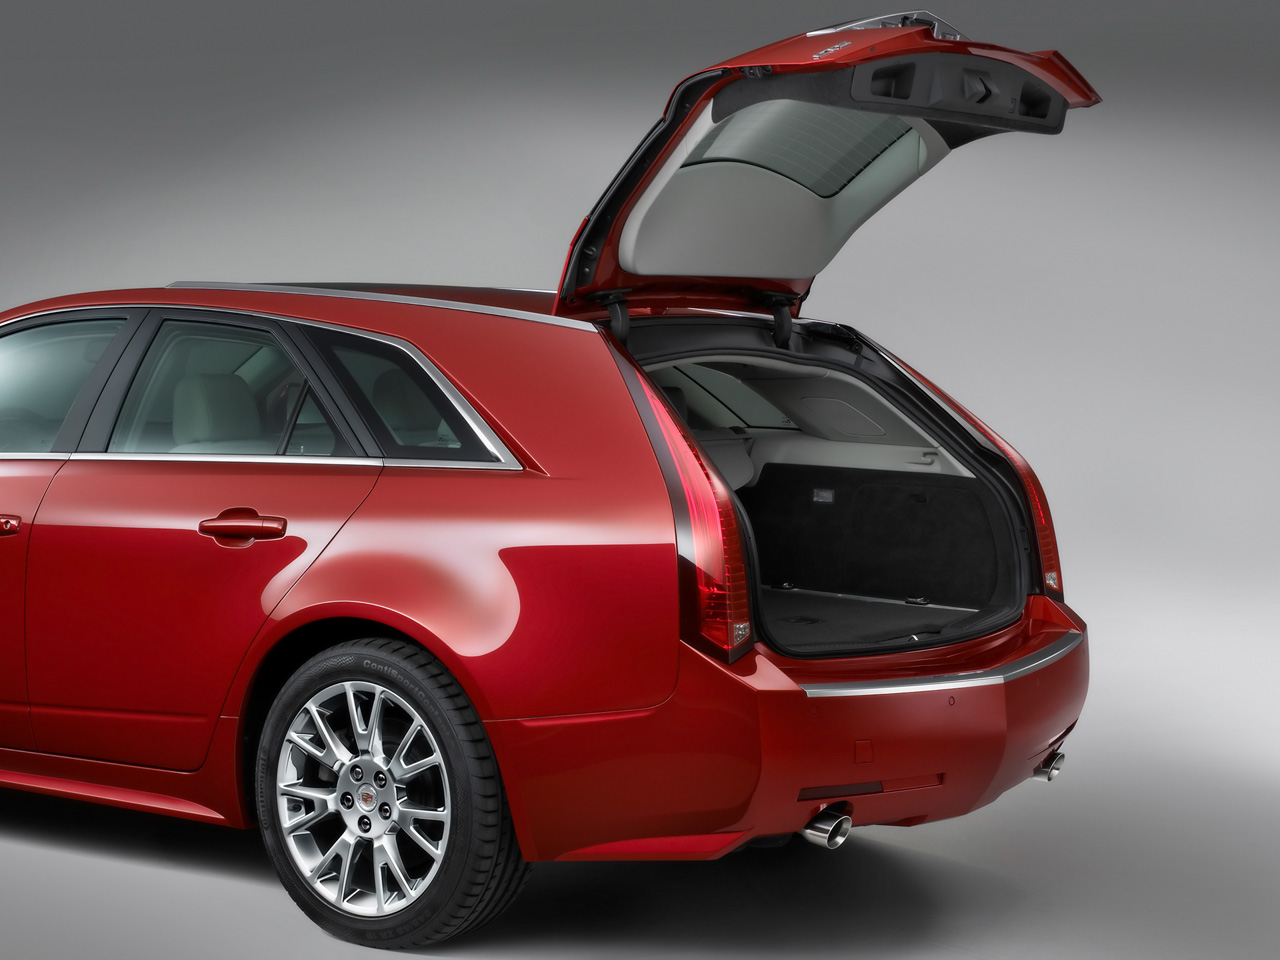 cadillac cts sport wagon 2010 images